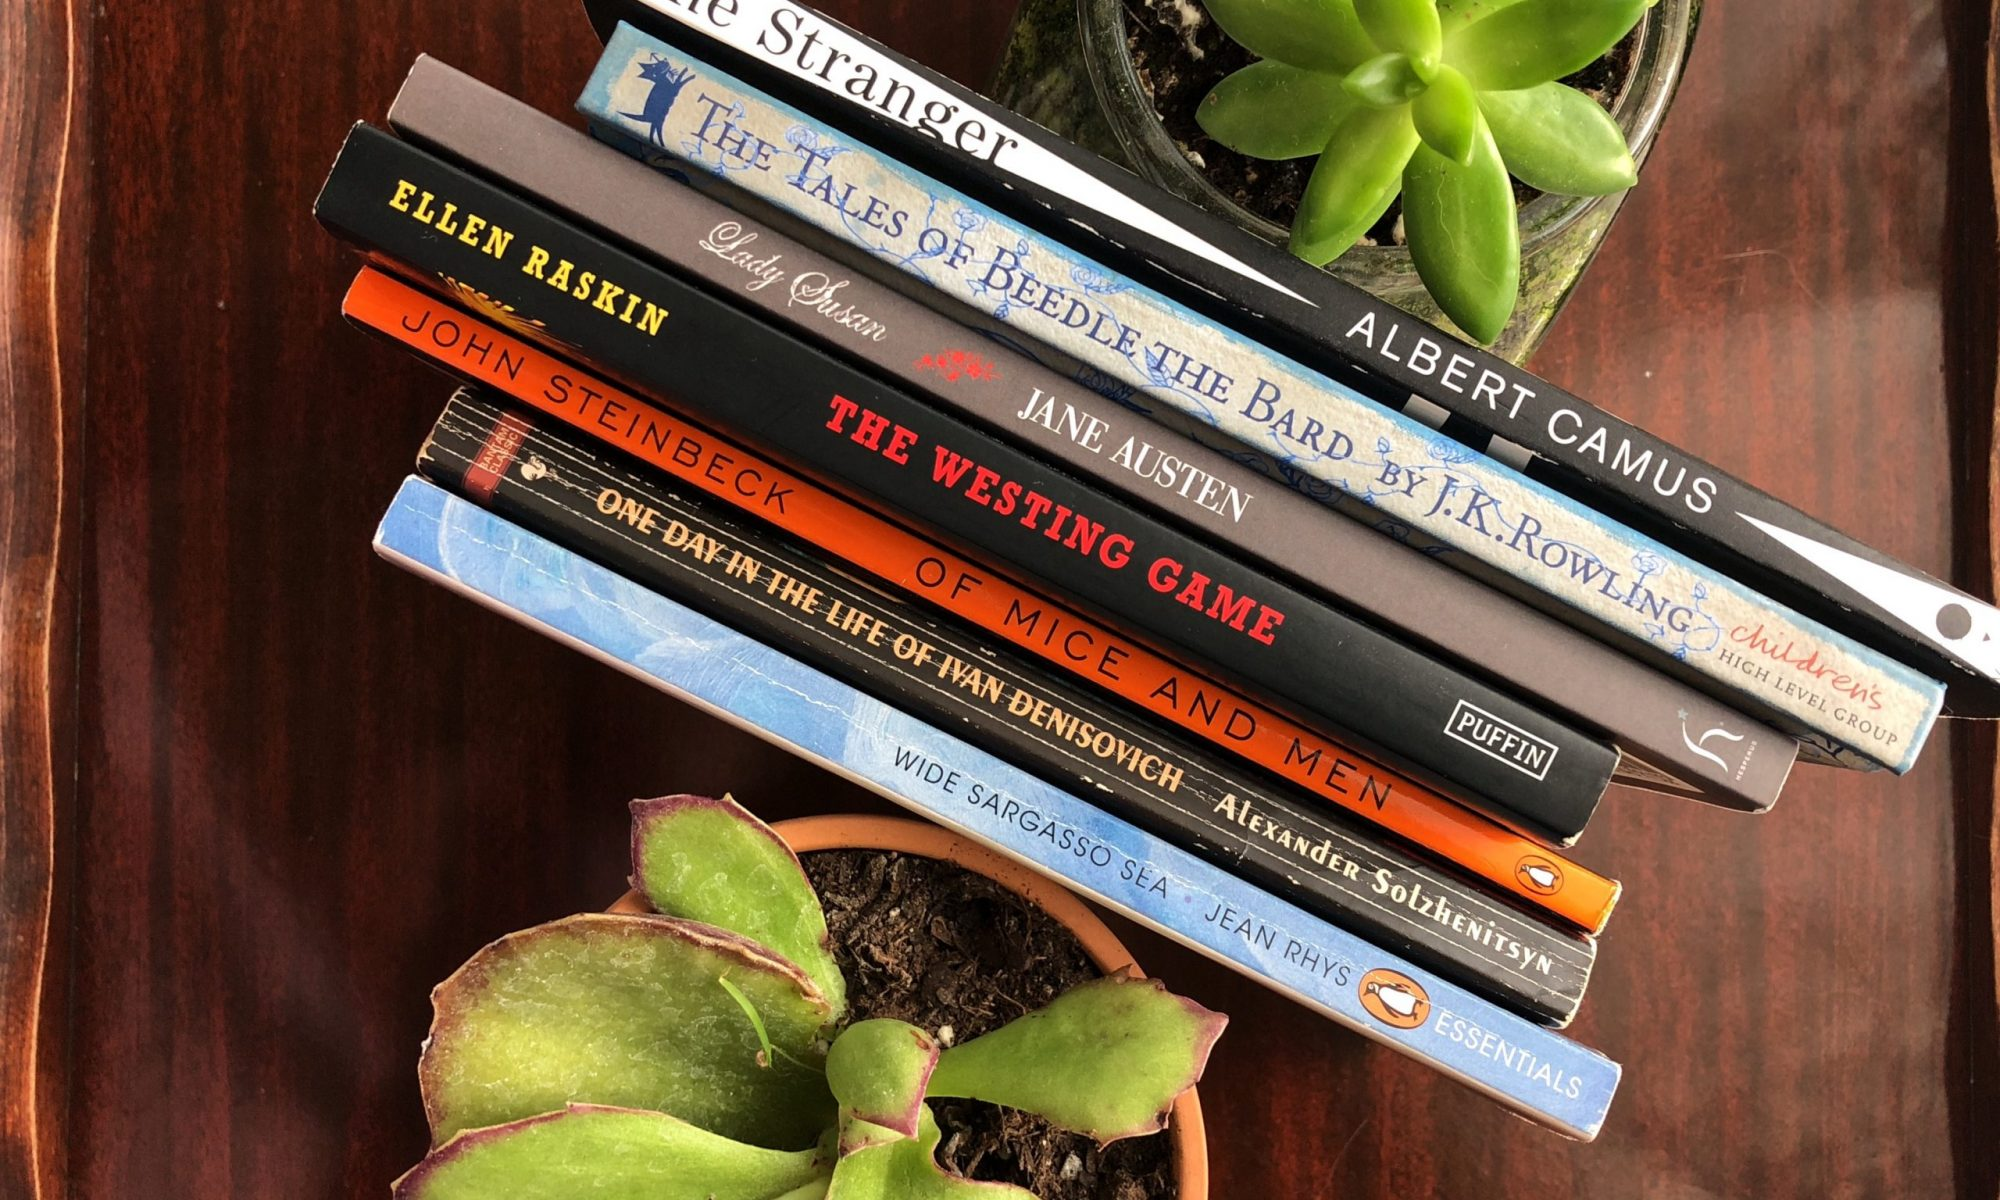 succulent plants with books in between them on a table